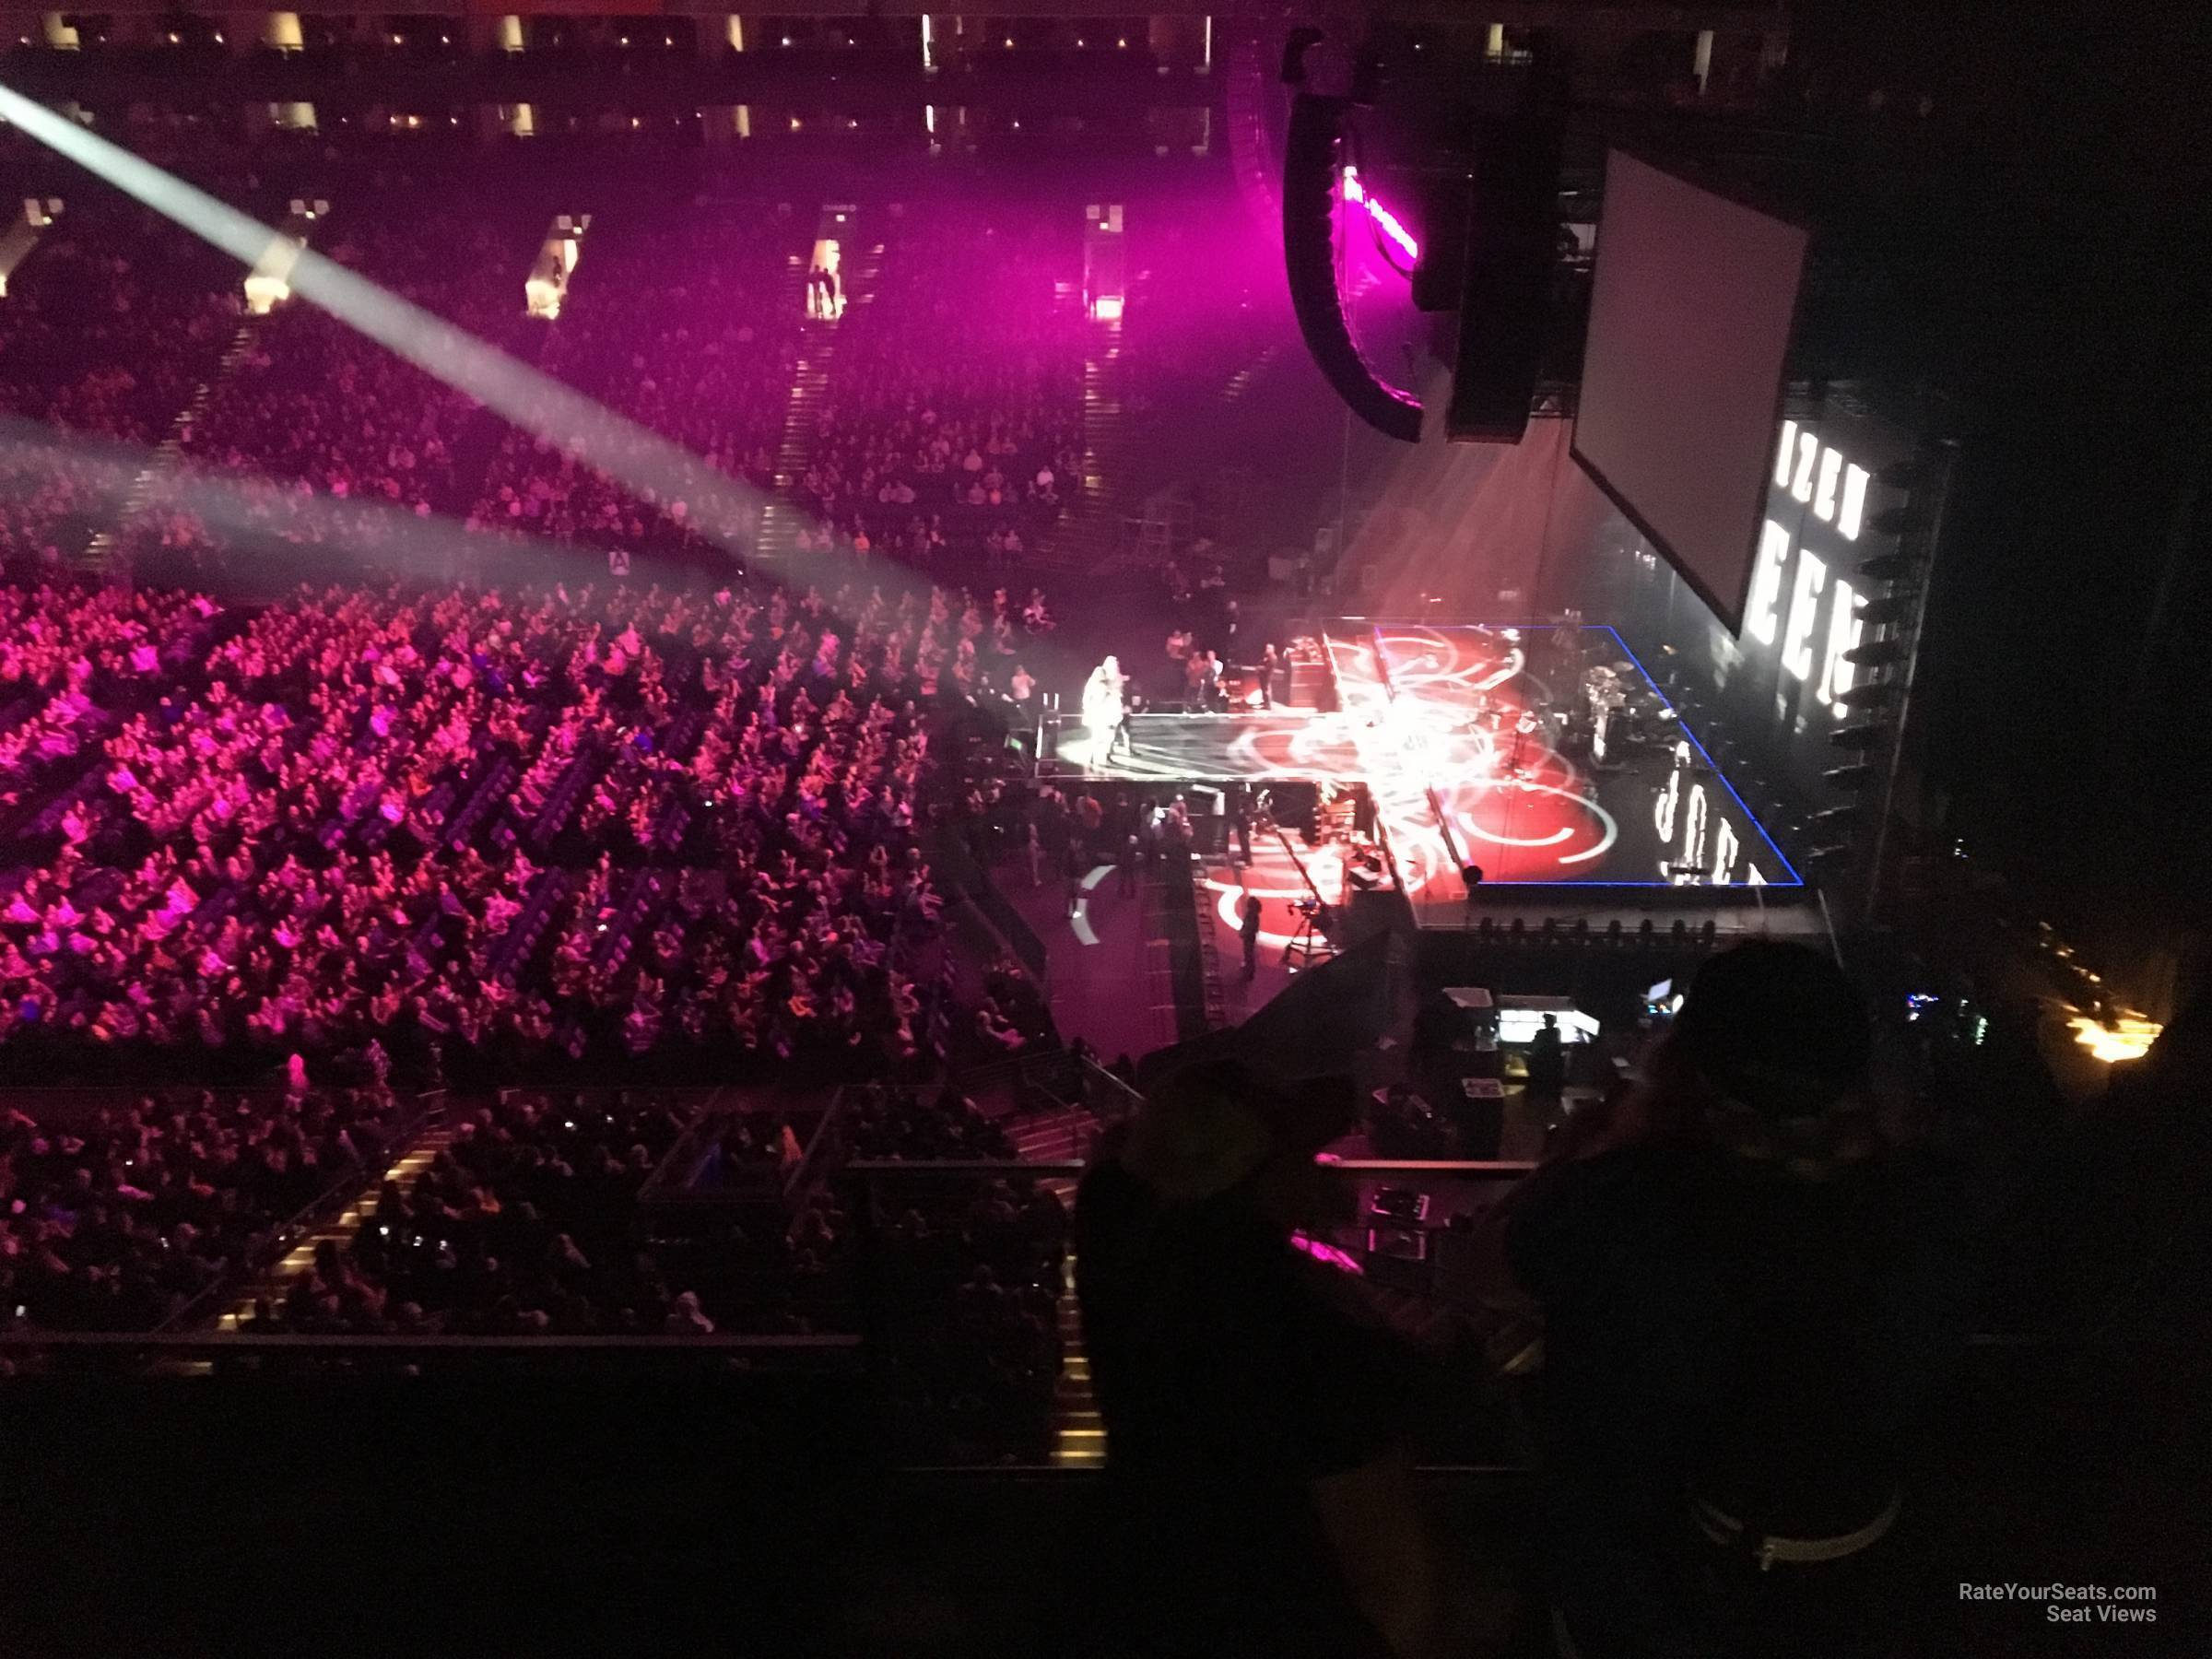 Concert Seat View for Oakland Arena Section 231, Row 3